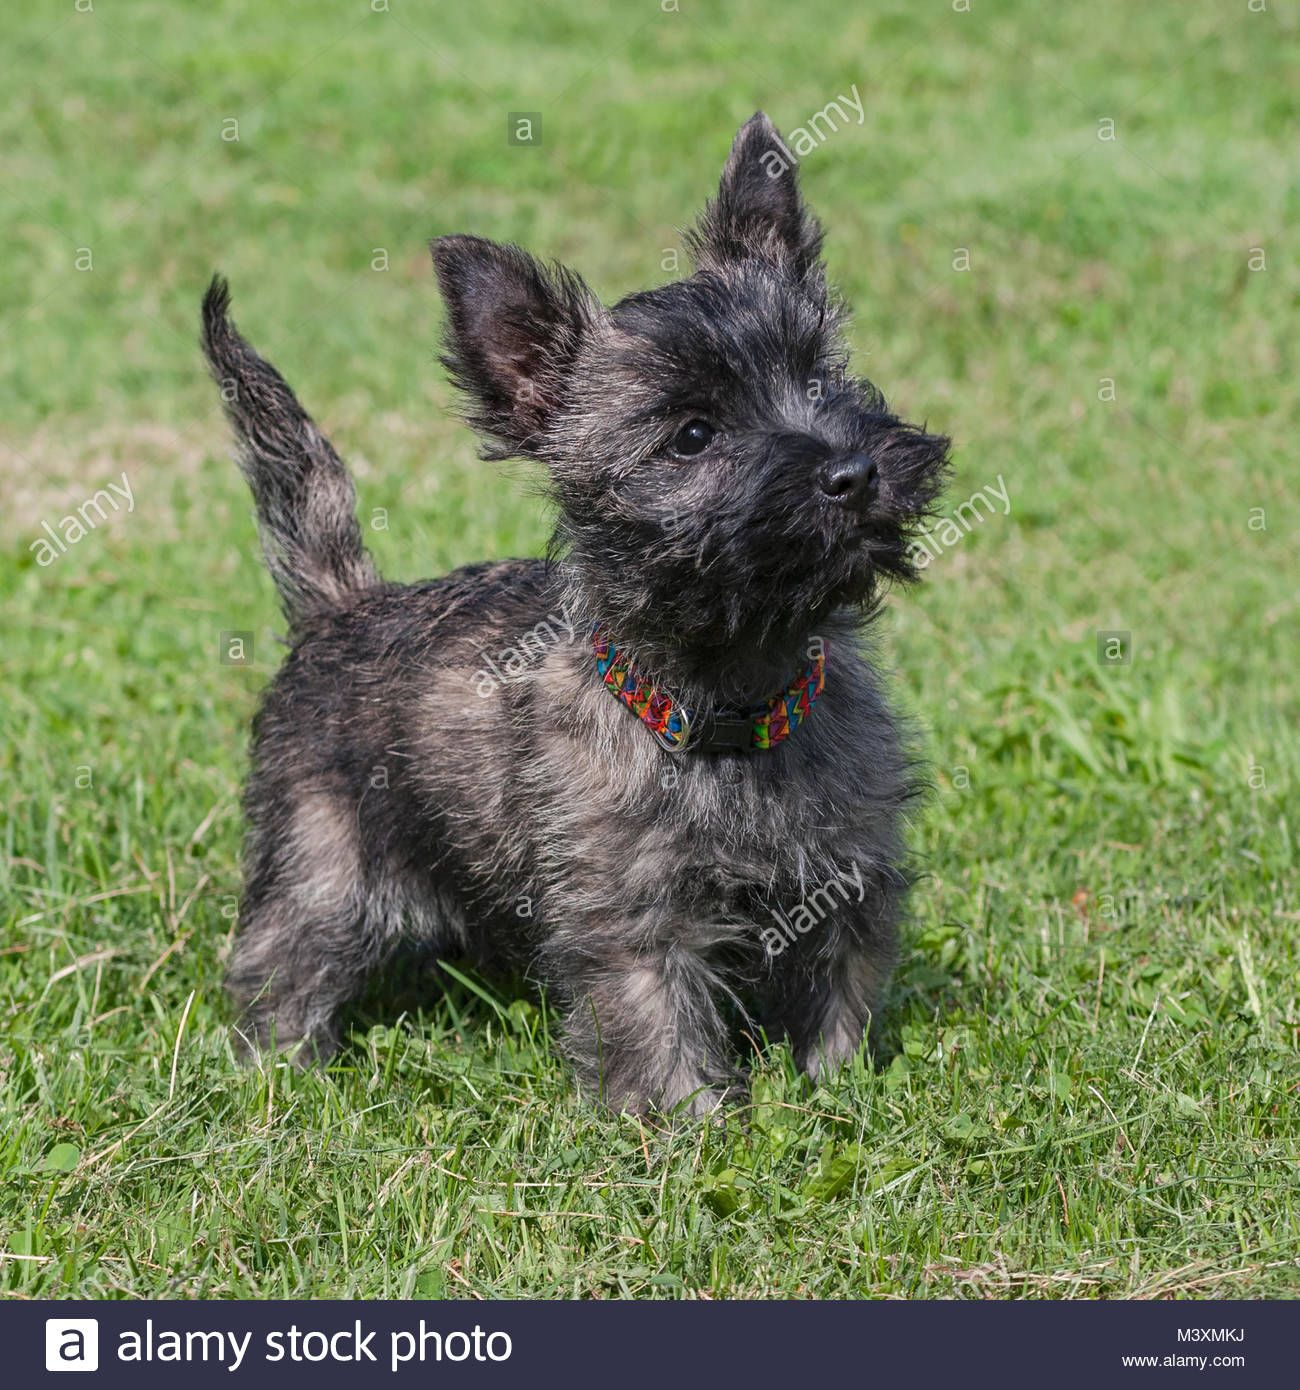 Download This Stock Image Brindle Colored Cairn Terrier Puppy